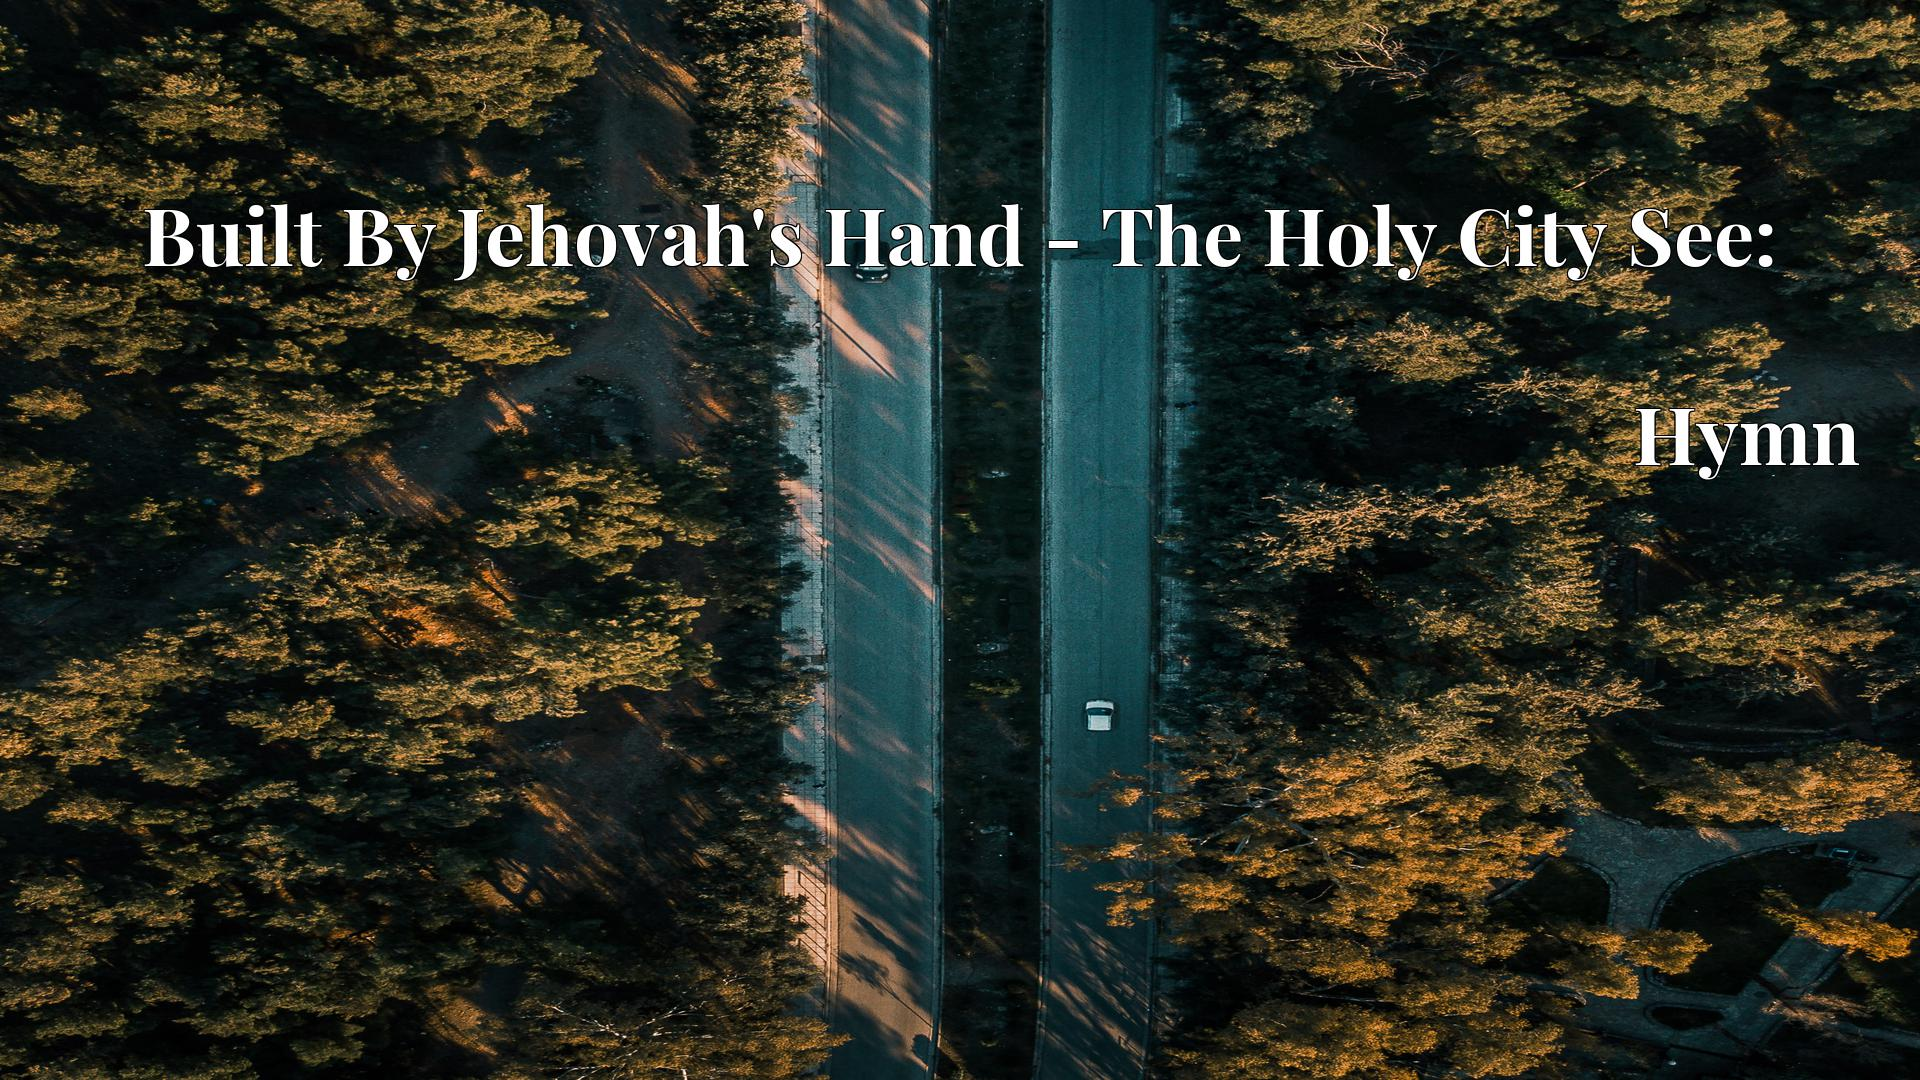 Built By Jehovah's Hand - The Holy City See: Hymn